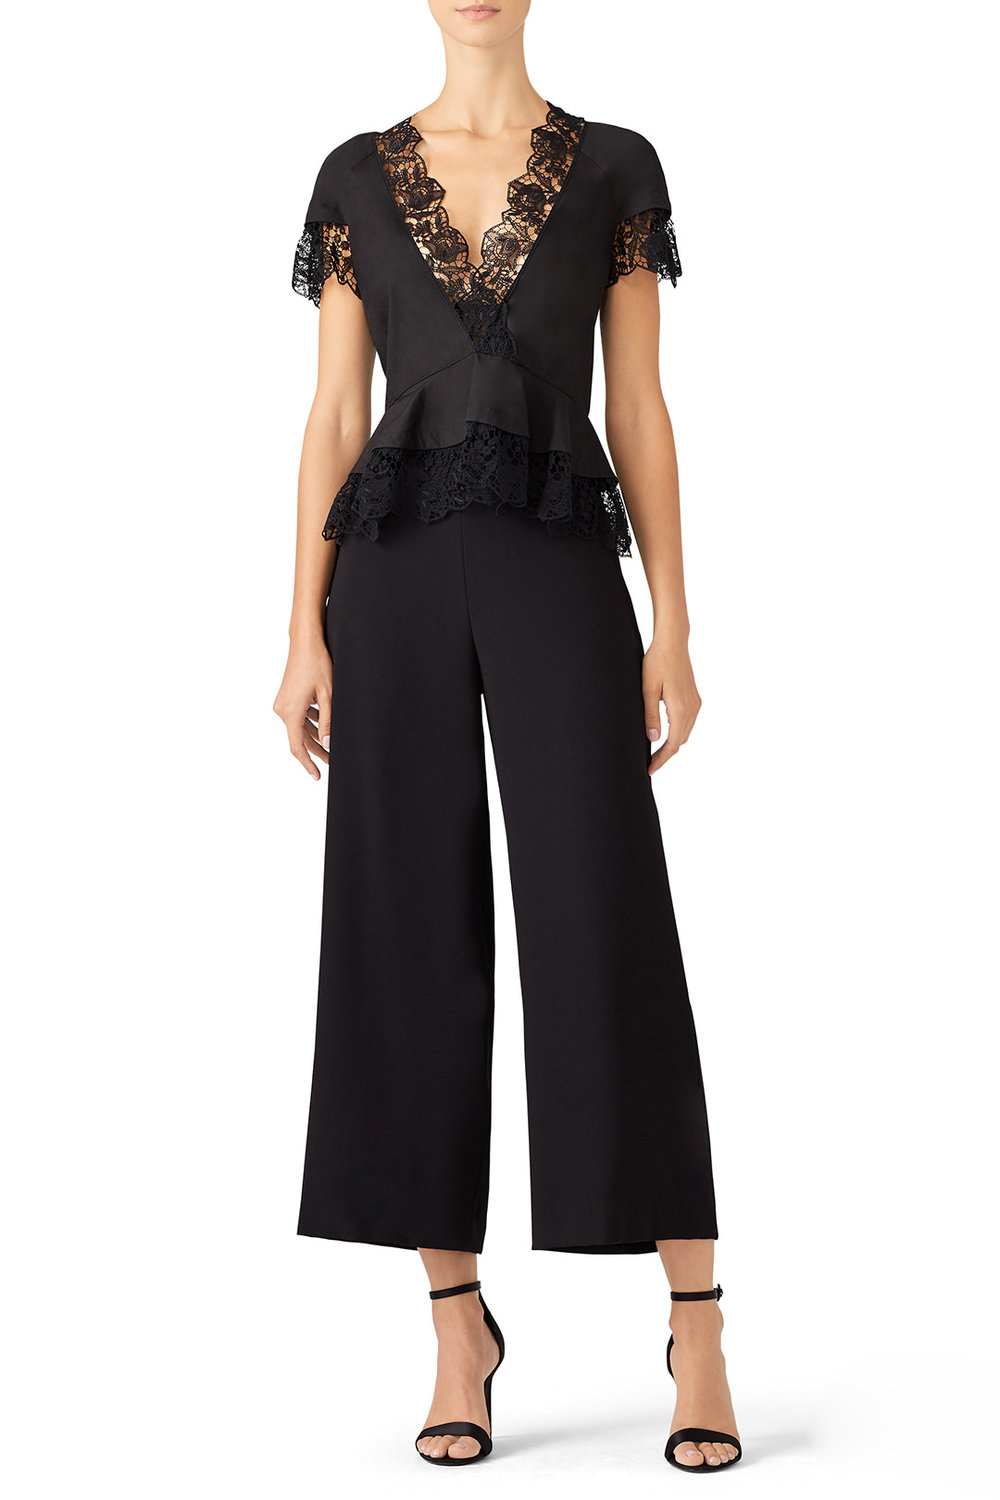 Lace Albany Top by A.L.C - Why It Works: Neutrals are great! The pop of black will offer nice contrast in your images. The lace neckline adds a feminine touch and visual interest.